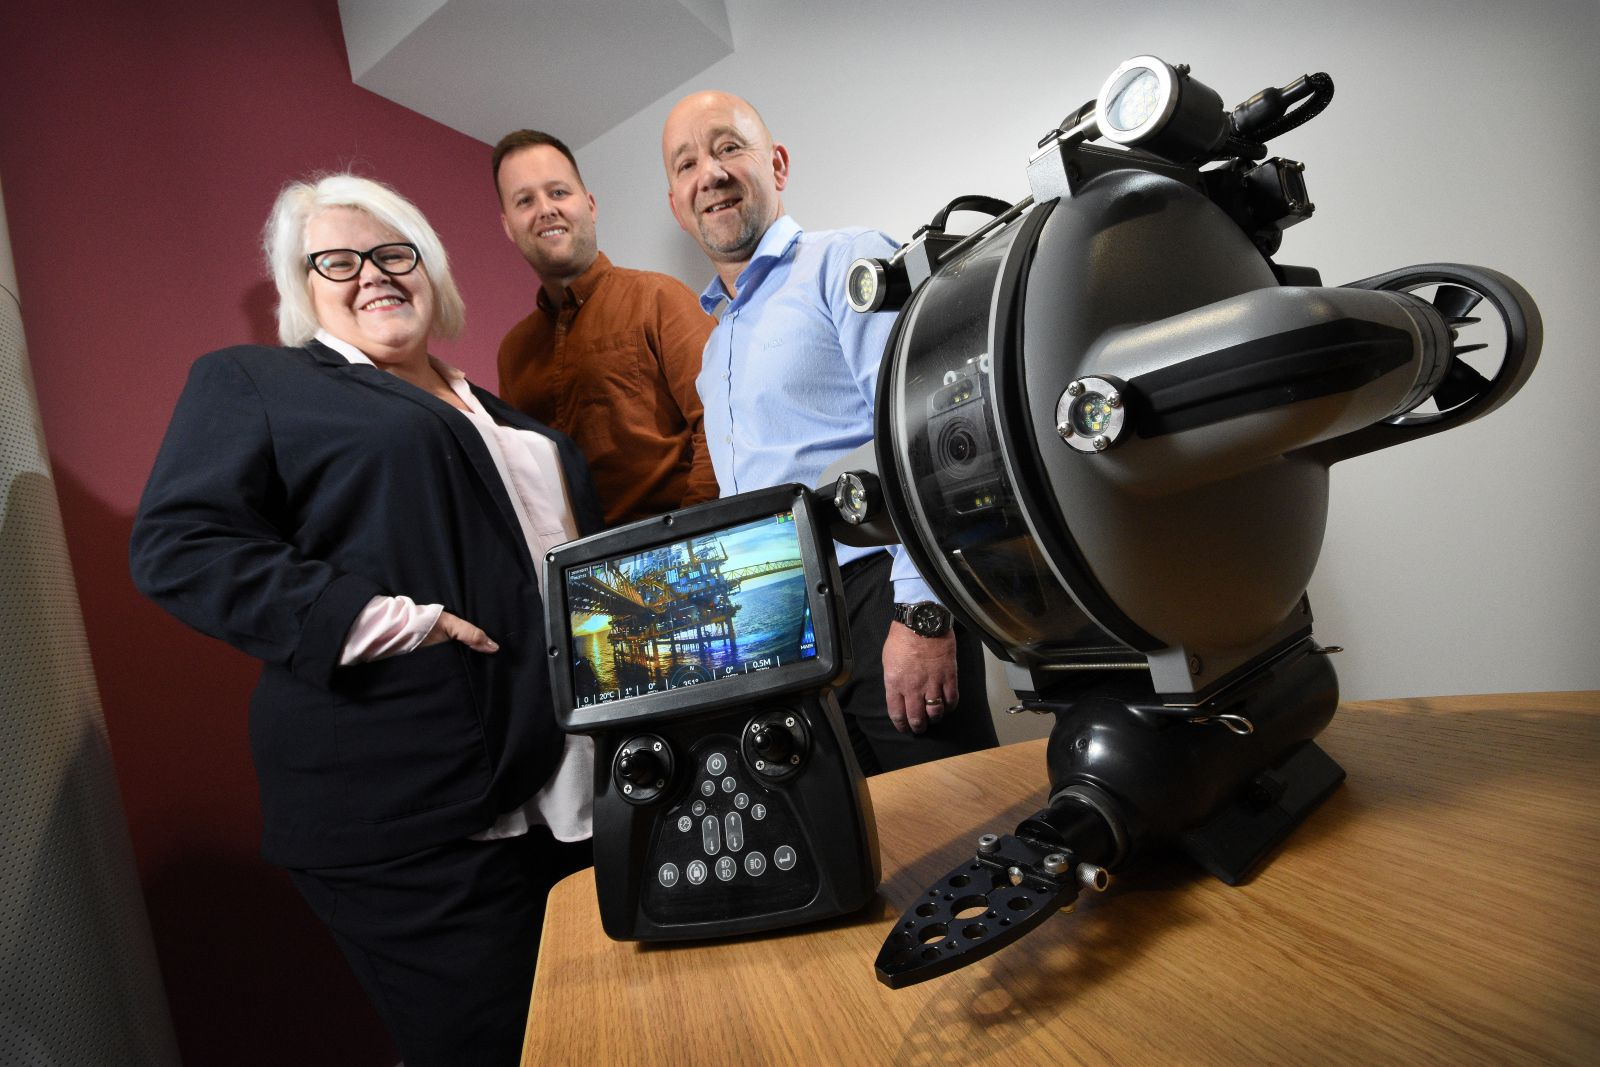 New cutting-edge technology developed thanks to Supply Chain North East